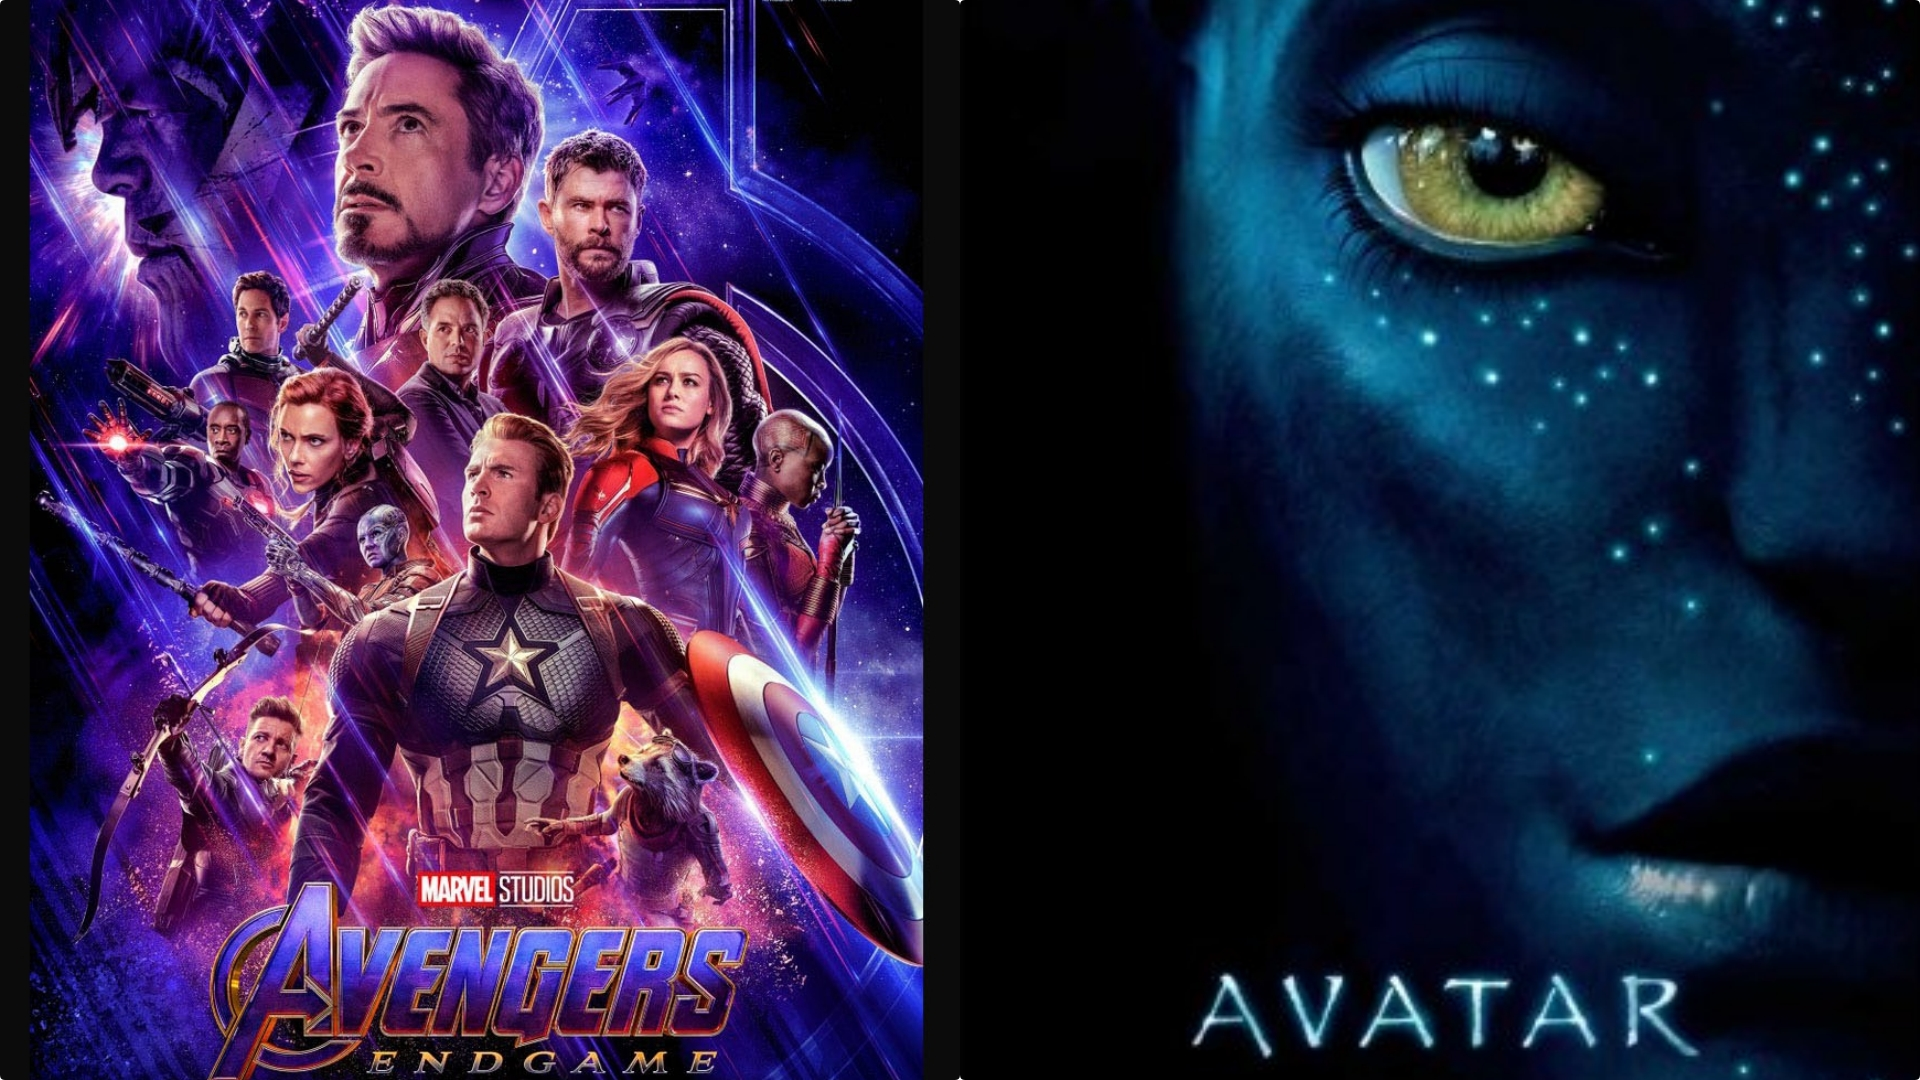 Avengers Endgame vs Avatar box office earnings